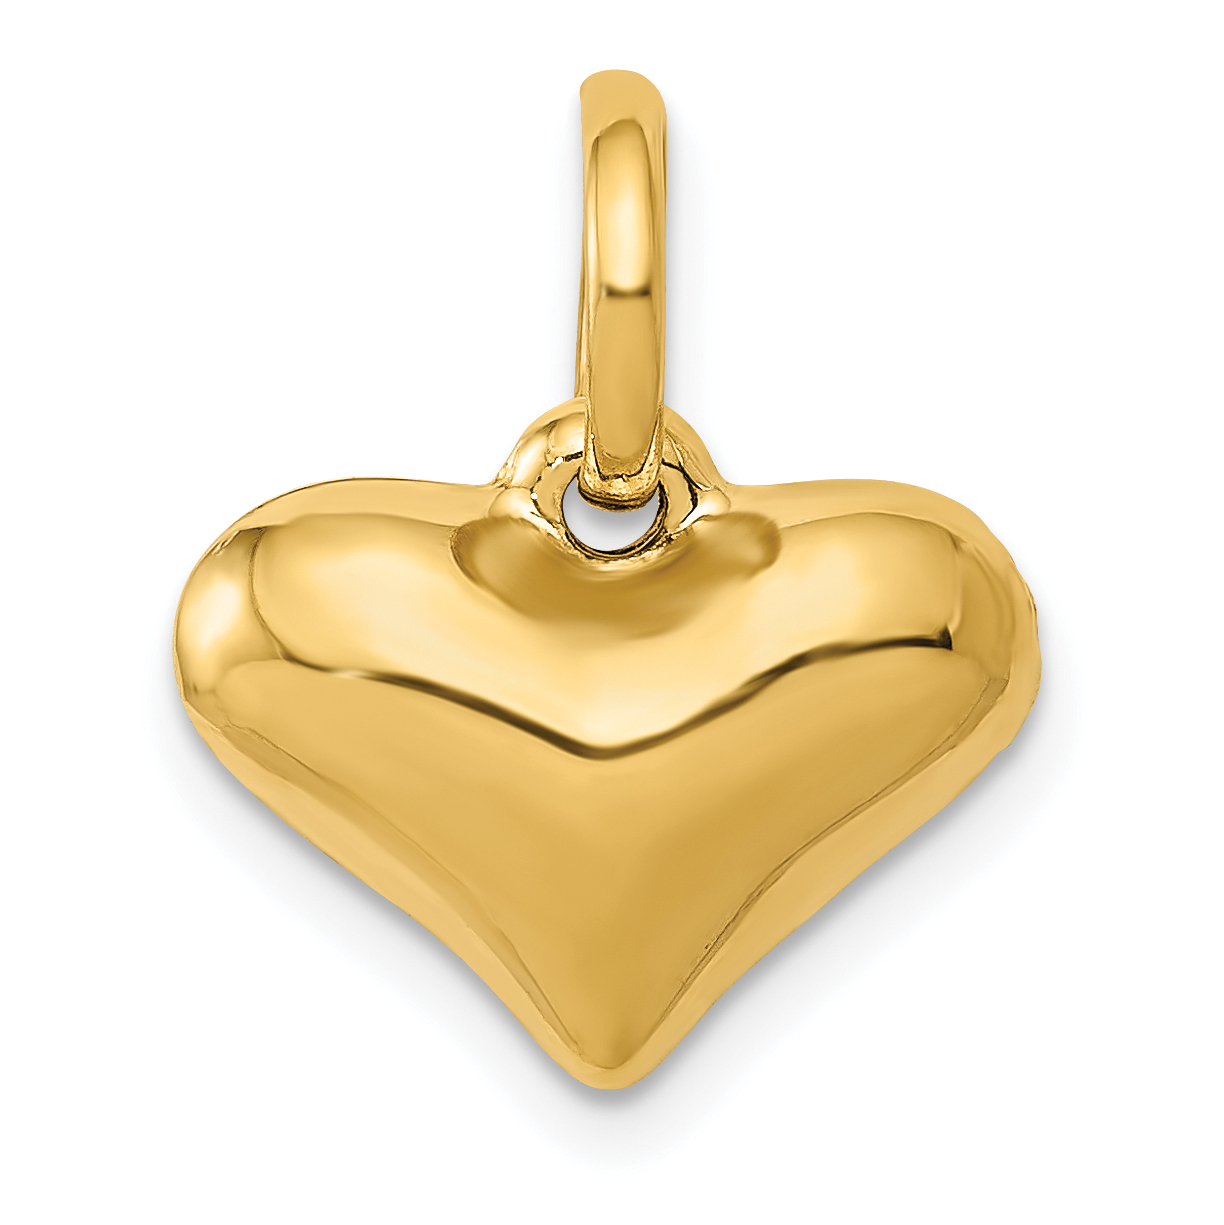 14K Yellow Gold Puffed Heart Pendant - image 2 de 2